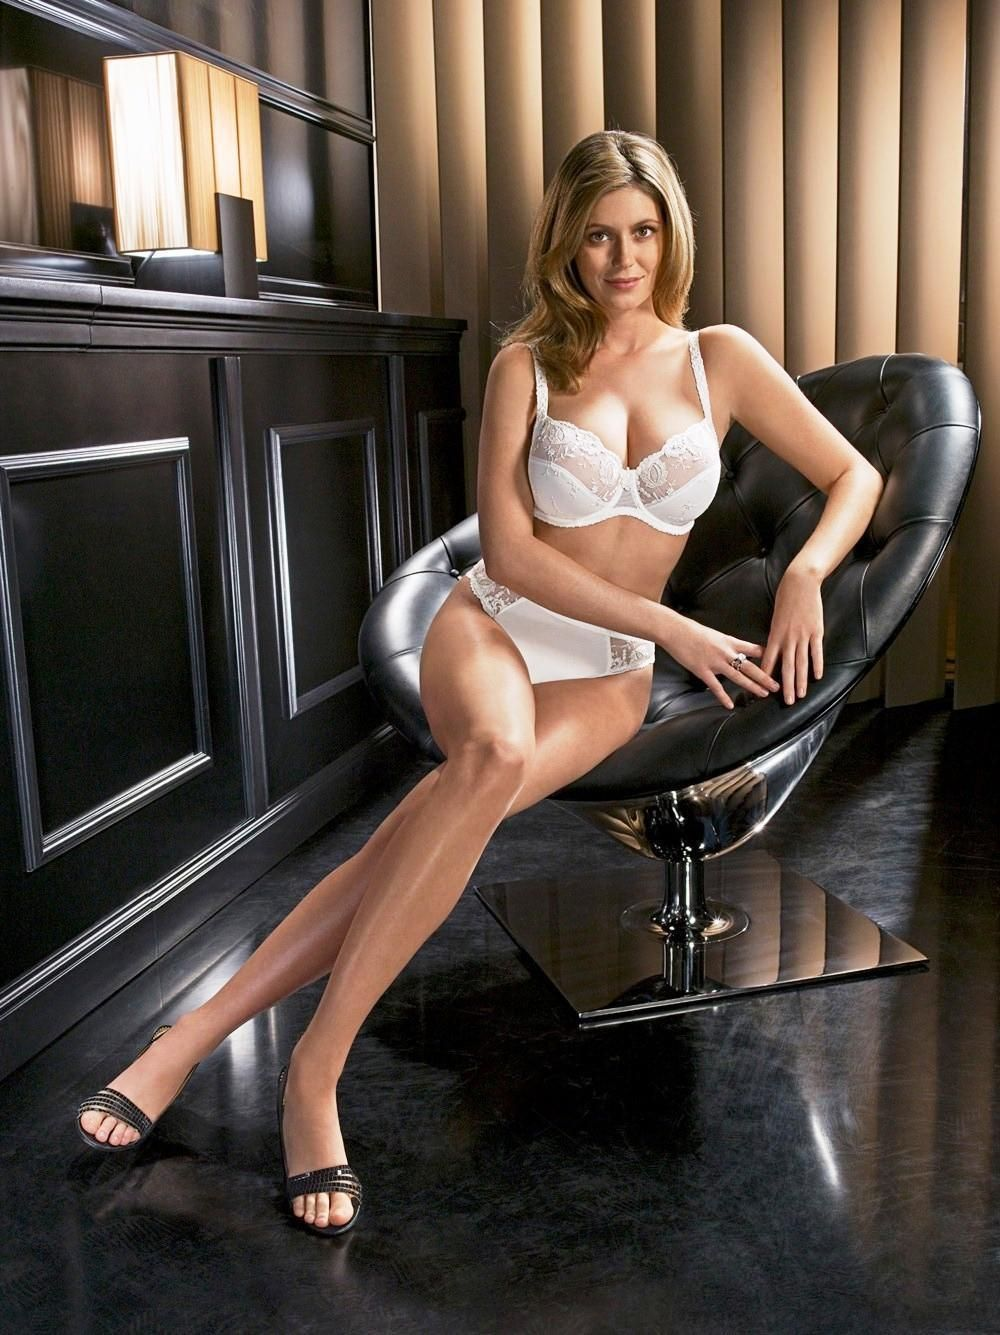 diora baird body measurement